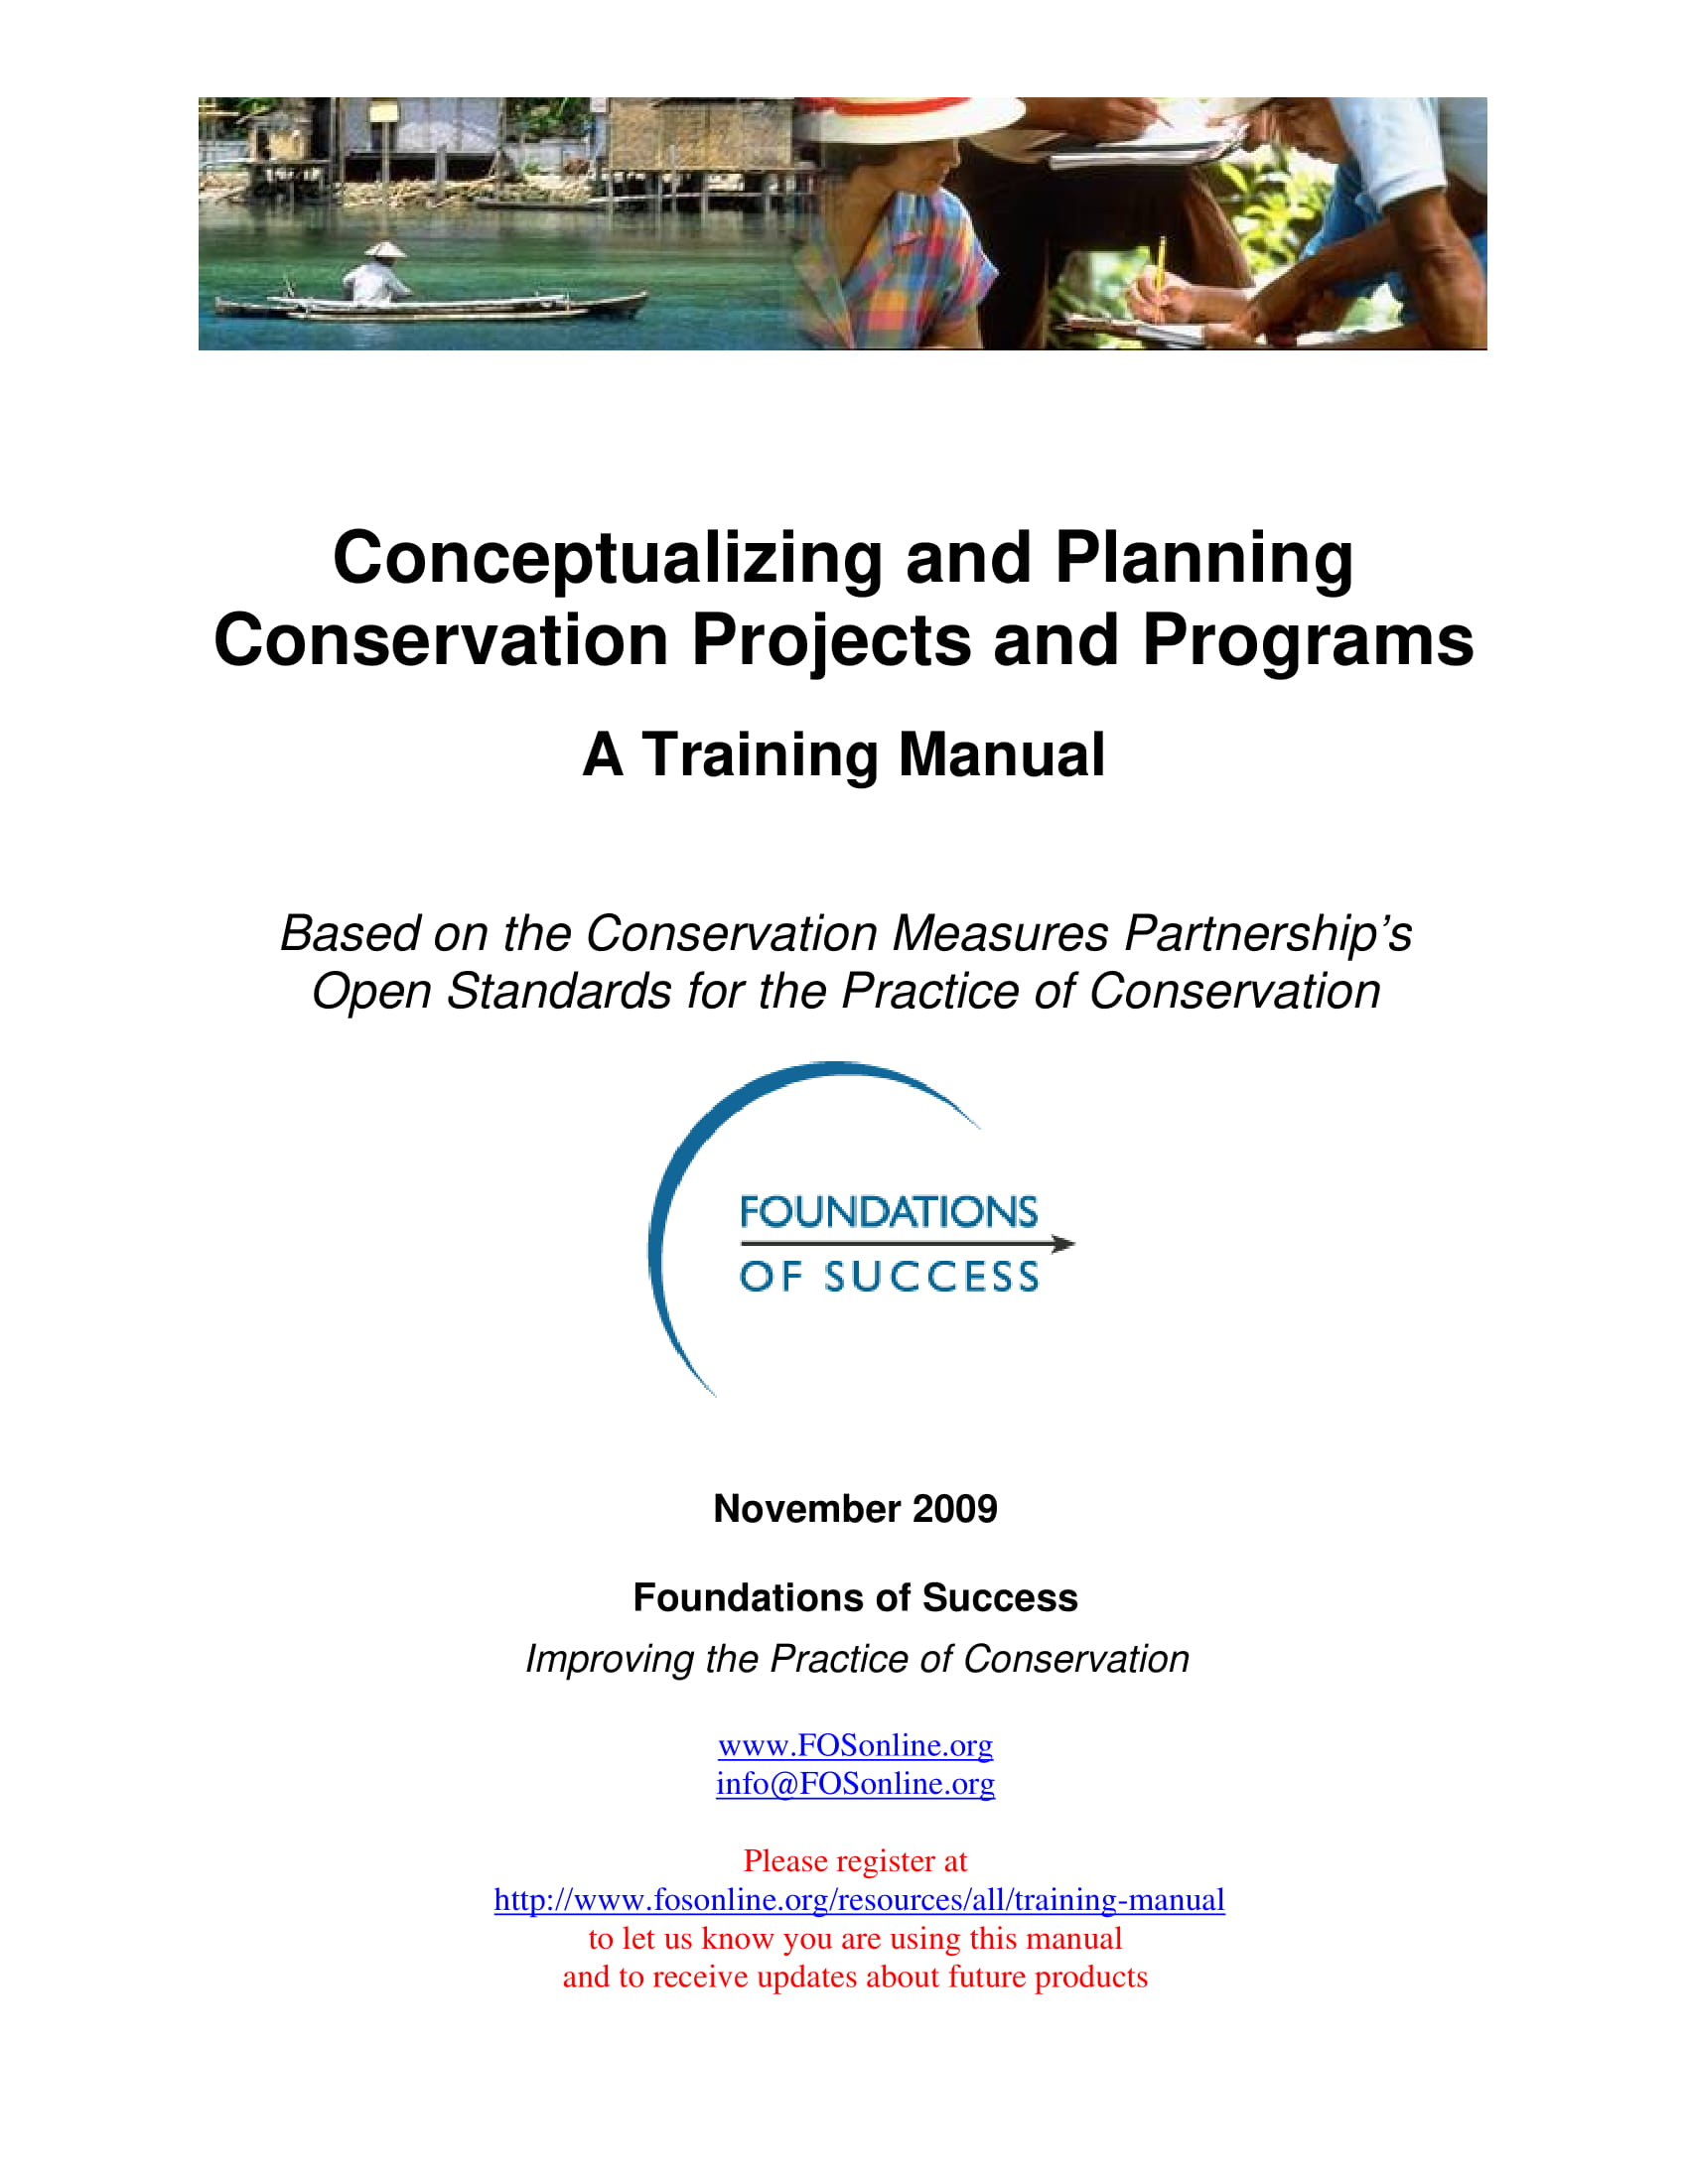 conservation projects and programs conceptualizing and action planning training manual example 001